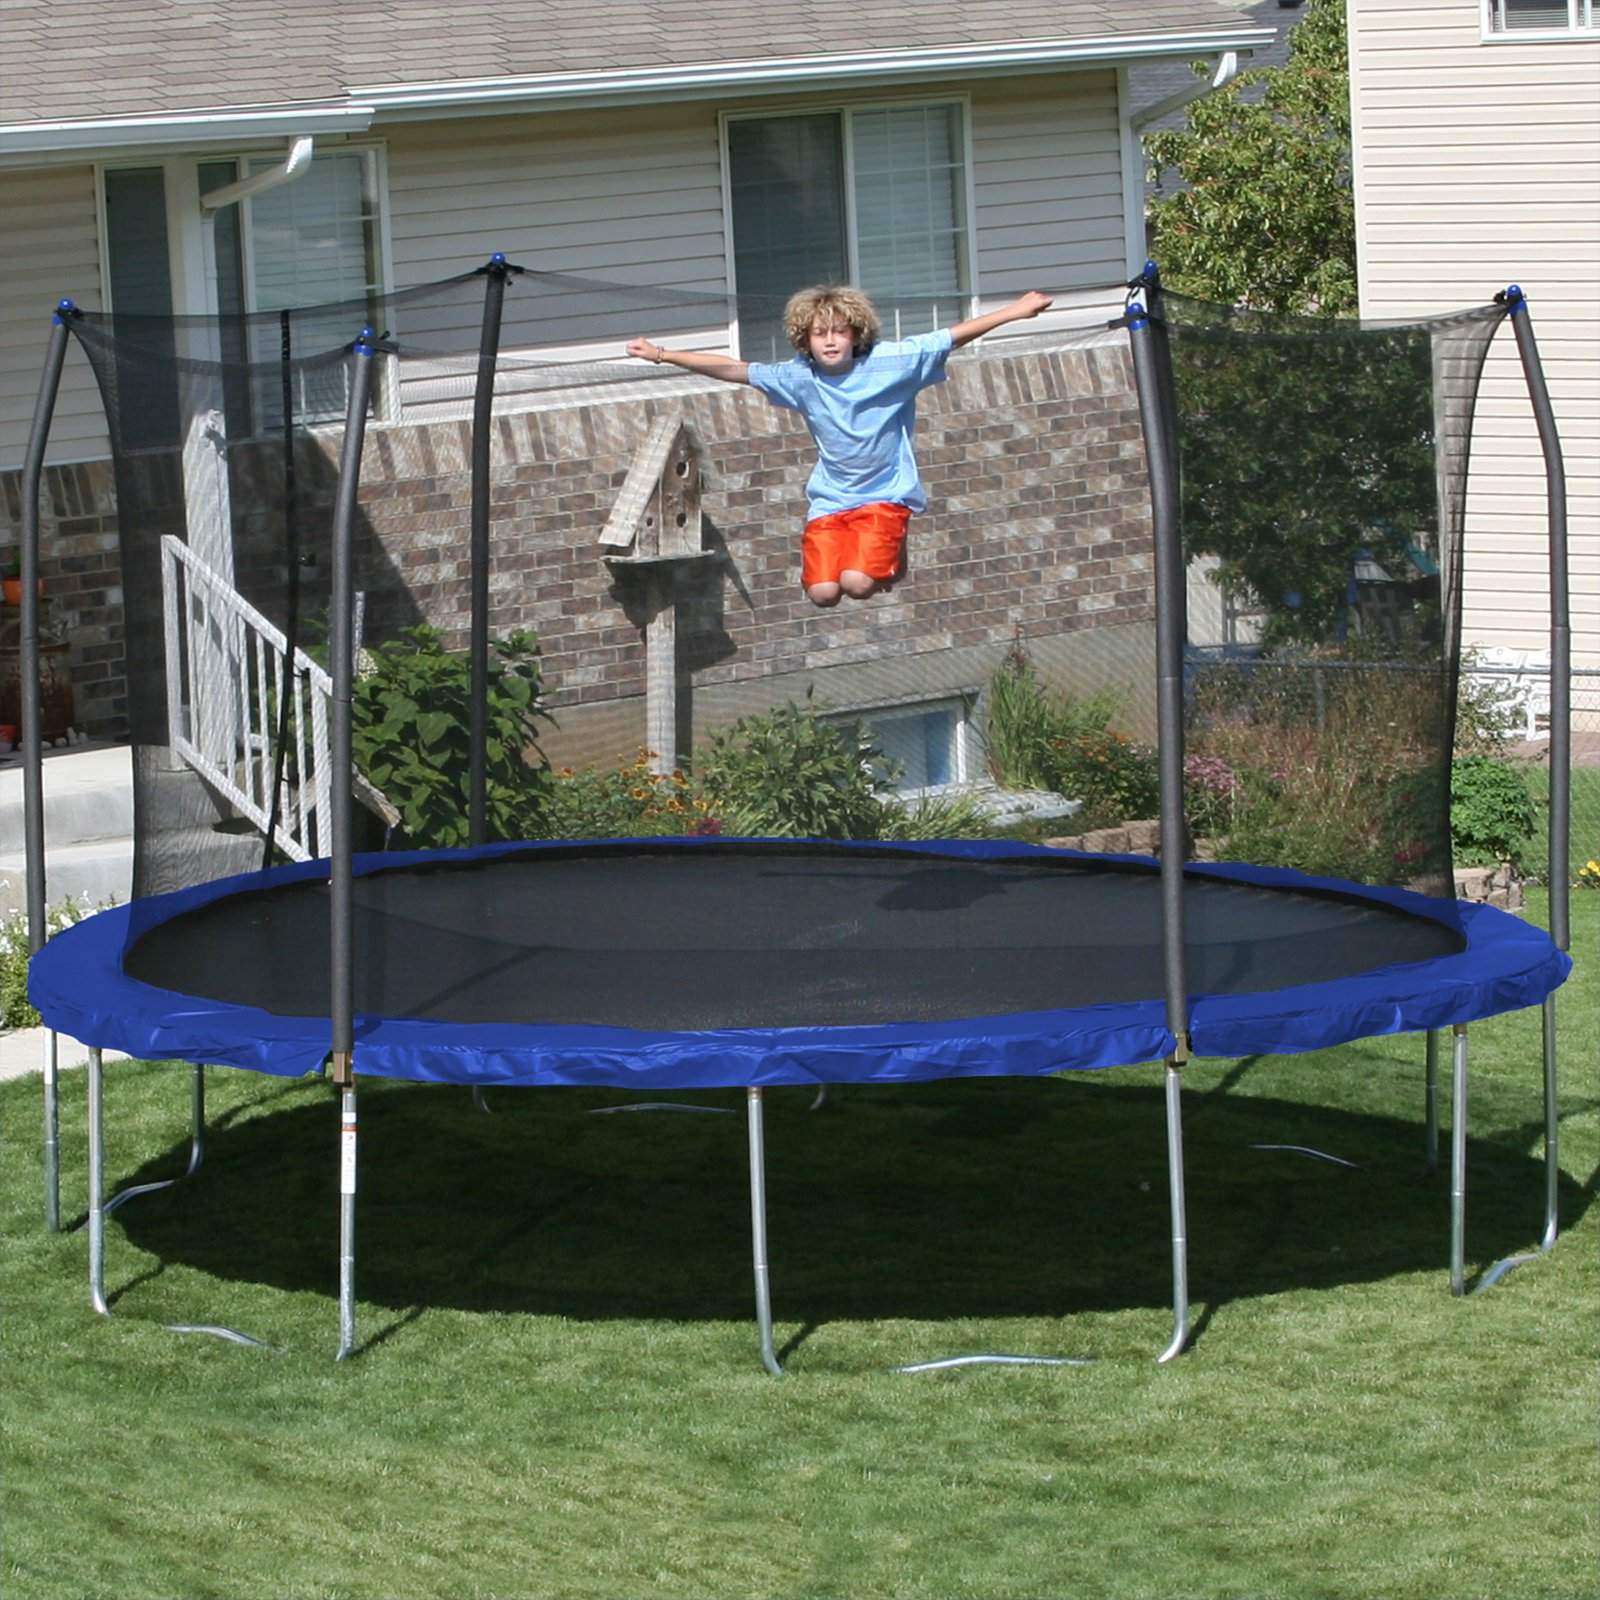 Skywalker Trampolines 15 ft. Round Trampoline with Safety...